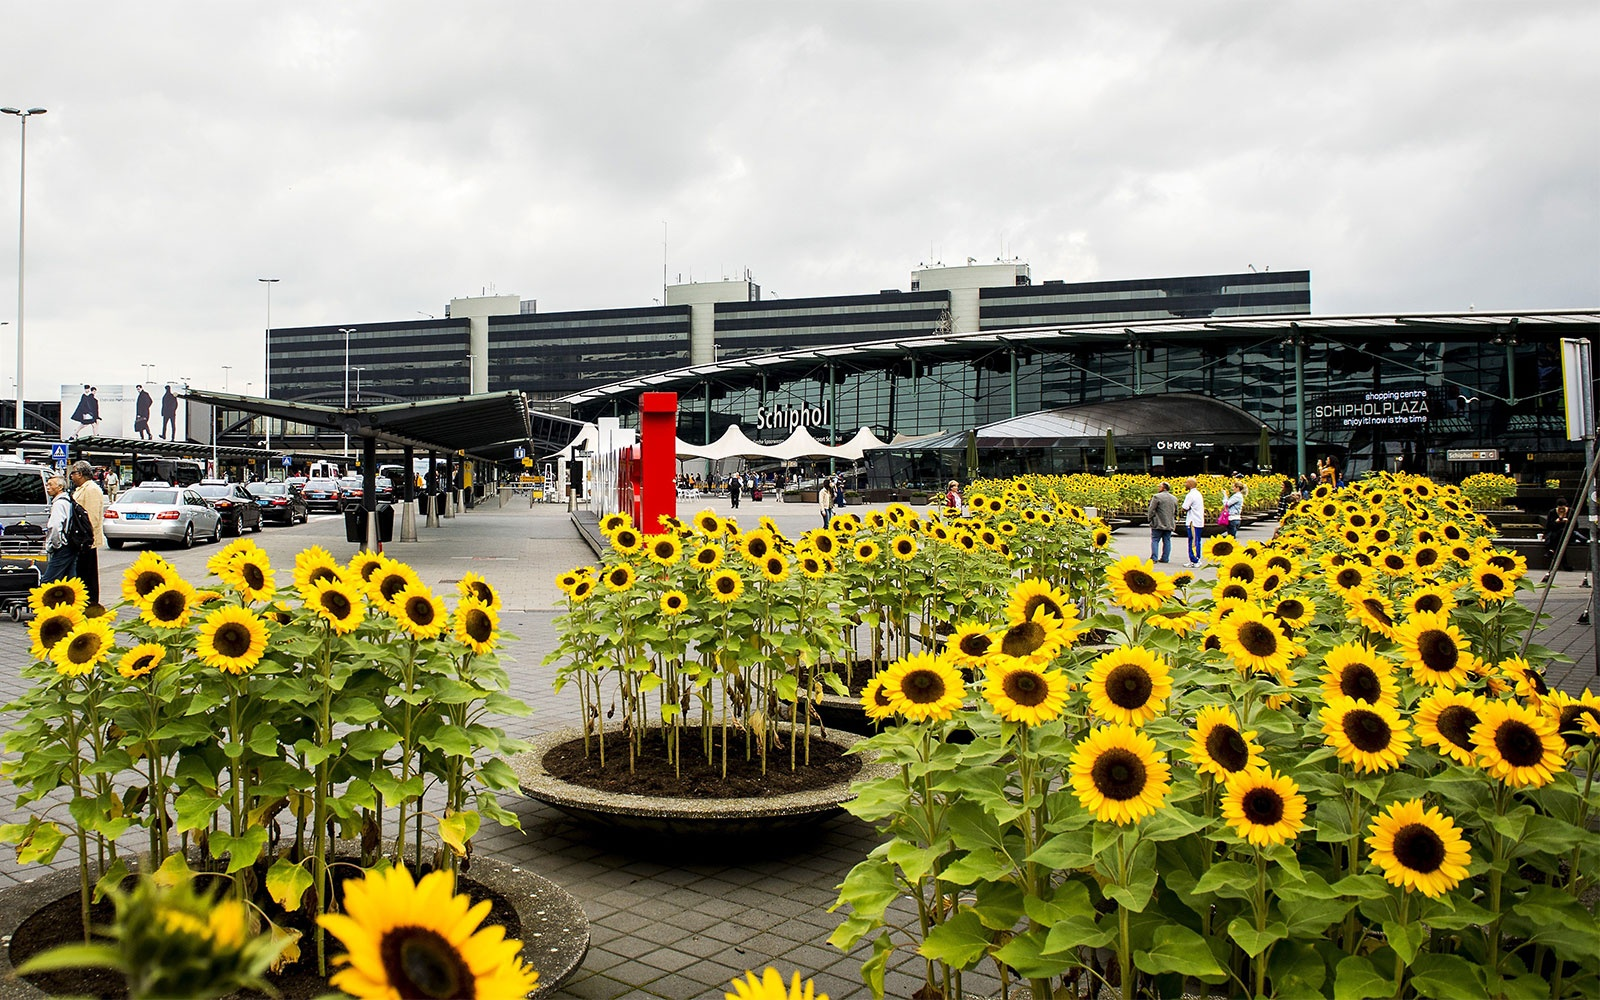 No. 3 International: Amsterdam Airport Schiphol, Netherlands